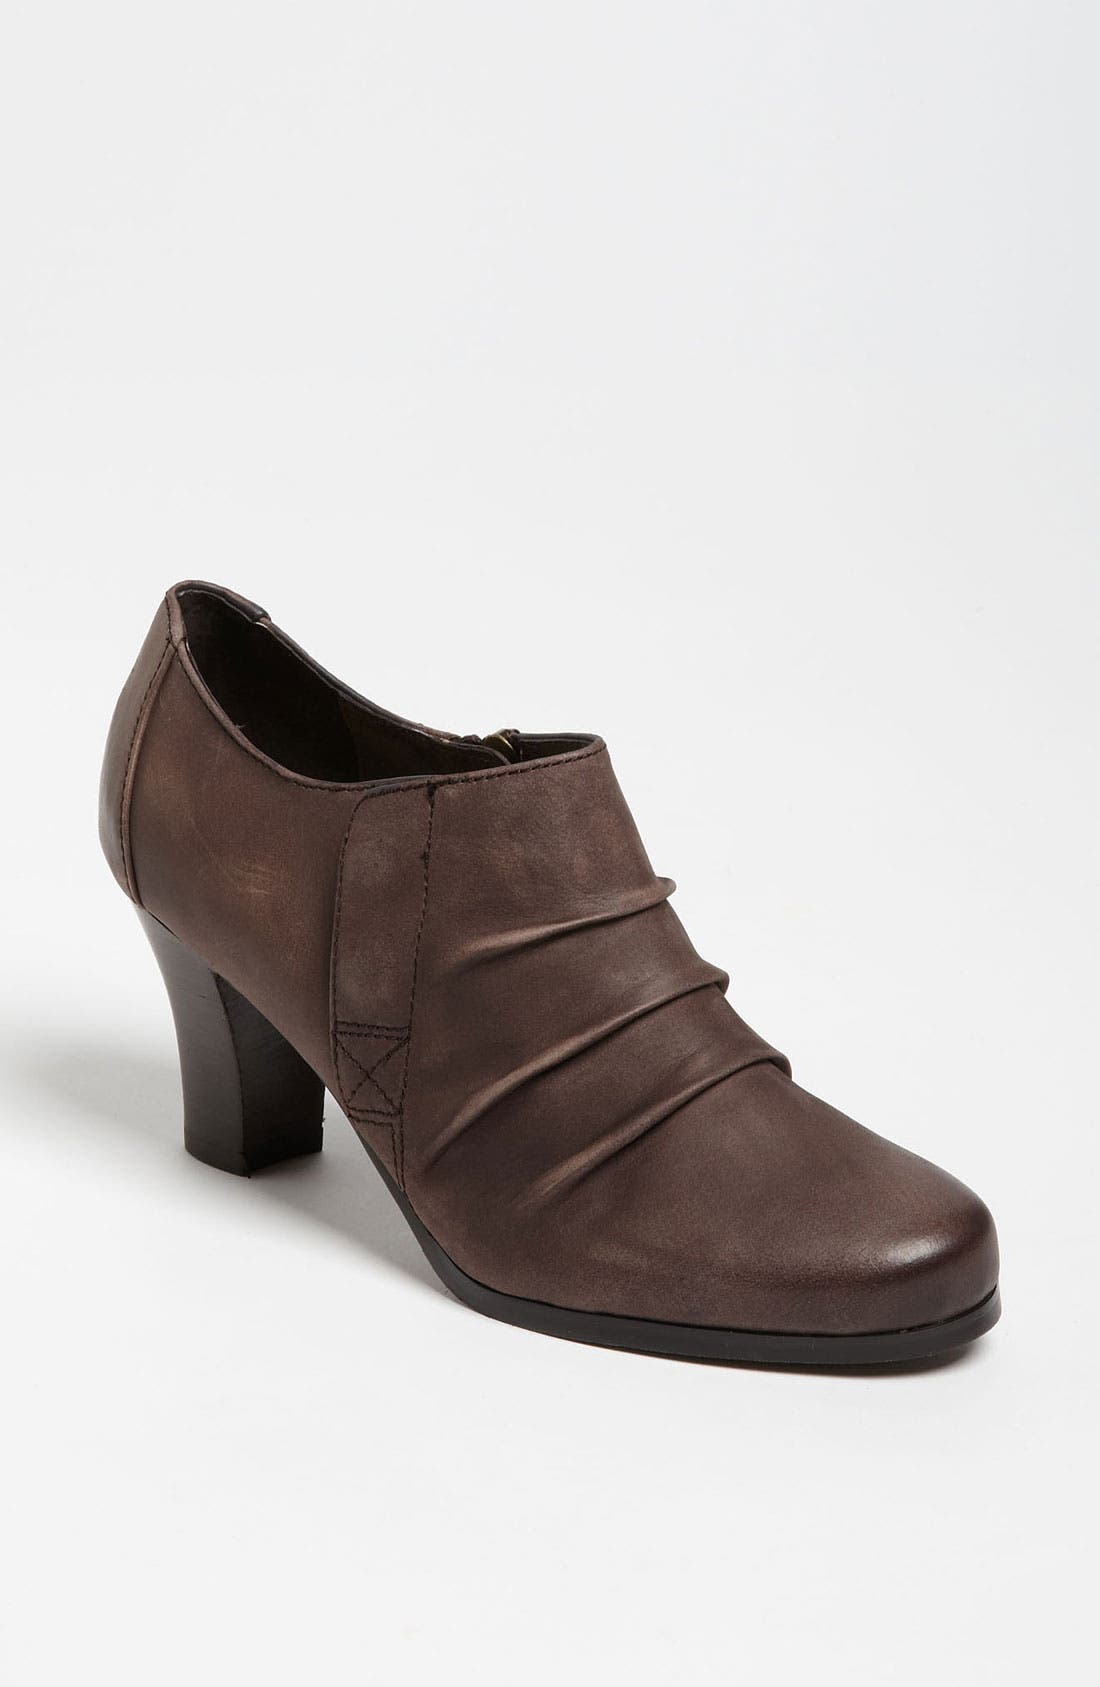 Alternate Image 1 Selected - Biala 'Cadence' Ruched Bootie